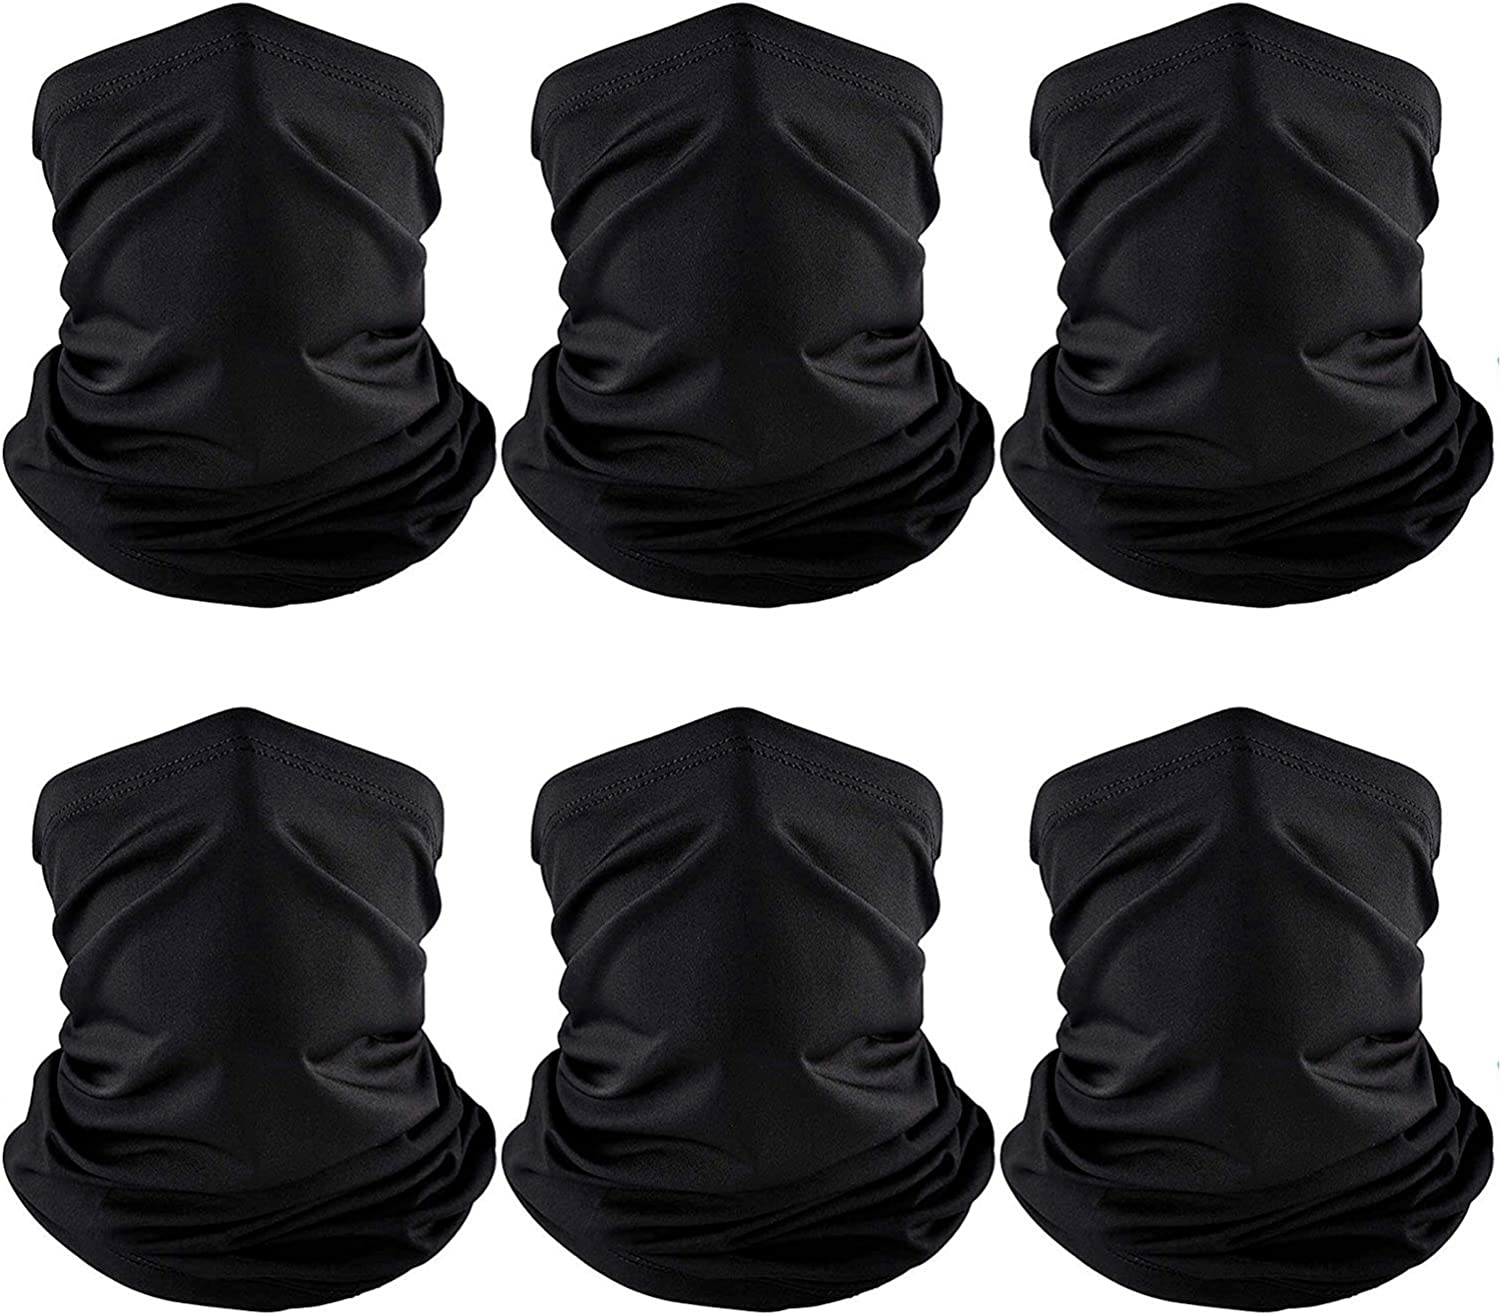 6 Pieces Summer Face Cover Scarf UV Protection Neck Gaiter Sunscreen Breathable Bandana